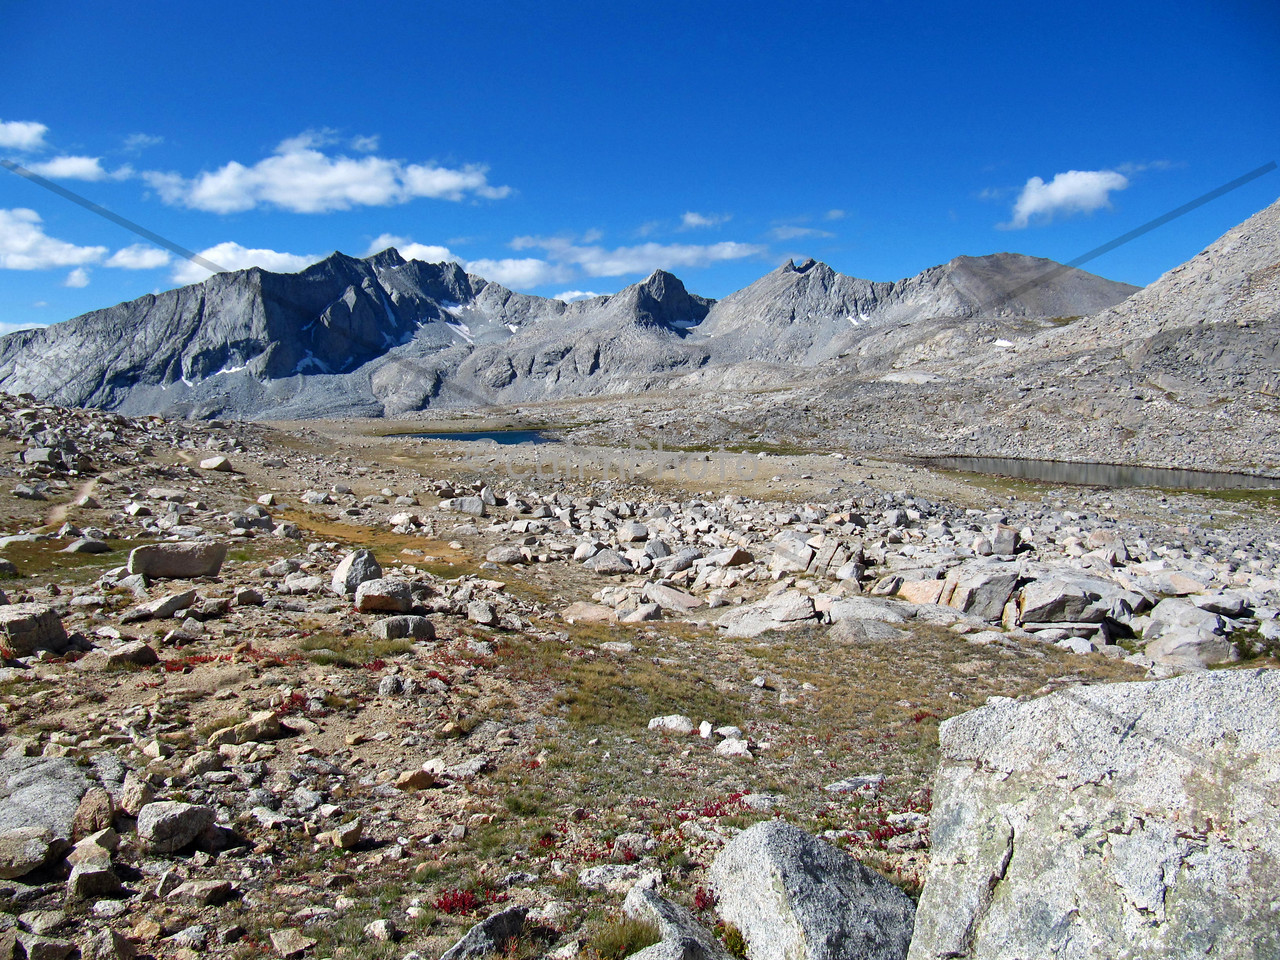 The lovely Upper Basin, just south of Mather pass.  The mountain range in the background includes the Vennacher Needle (12,996).